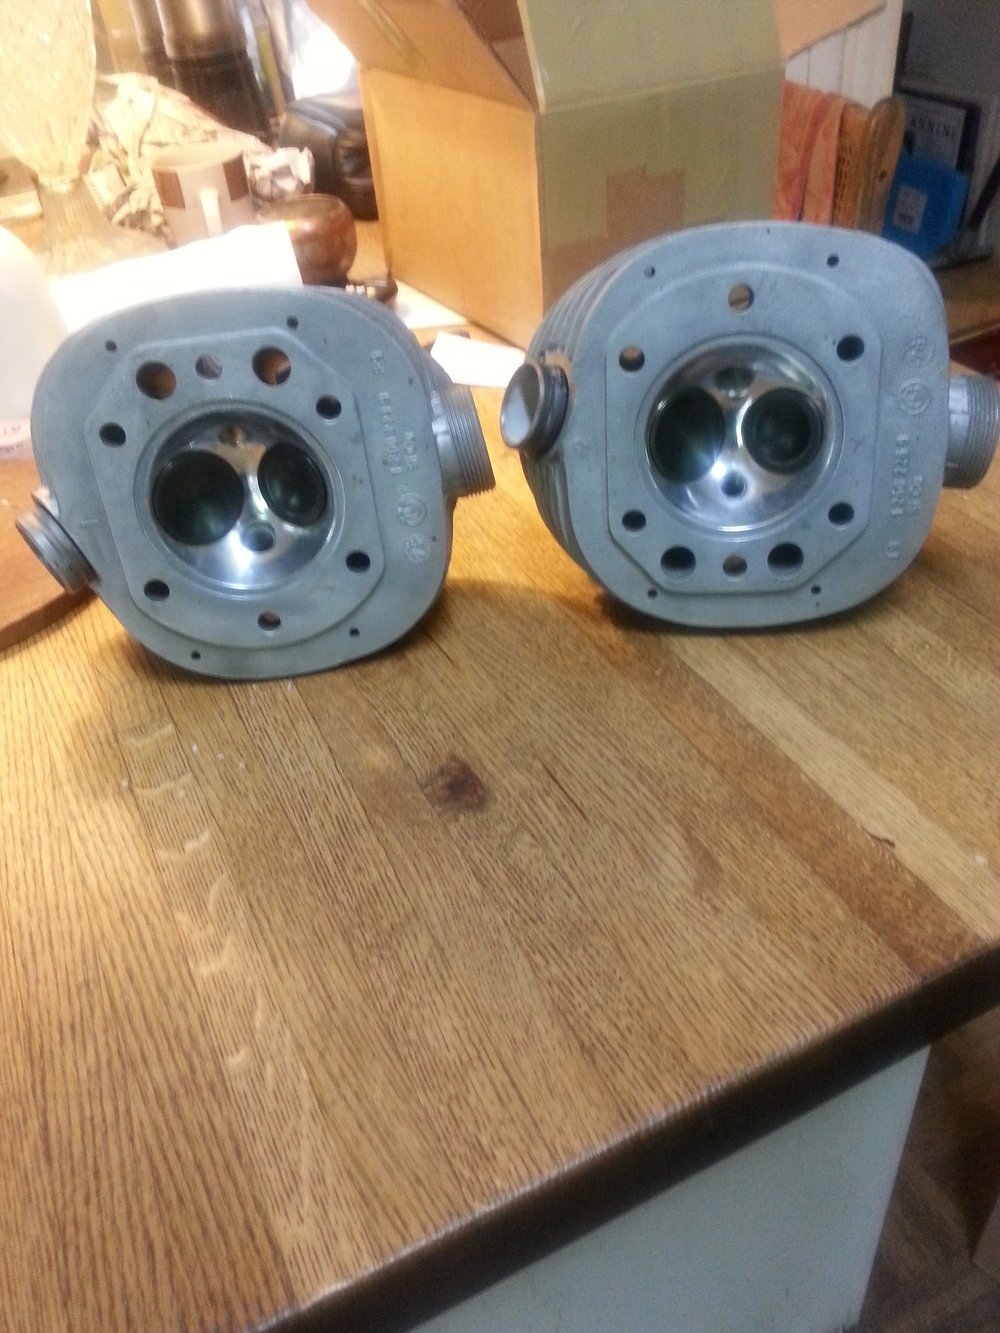 BMW r /5 heads ready for race duty